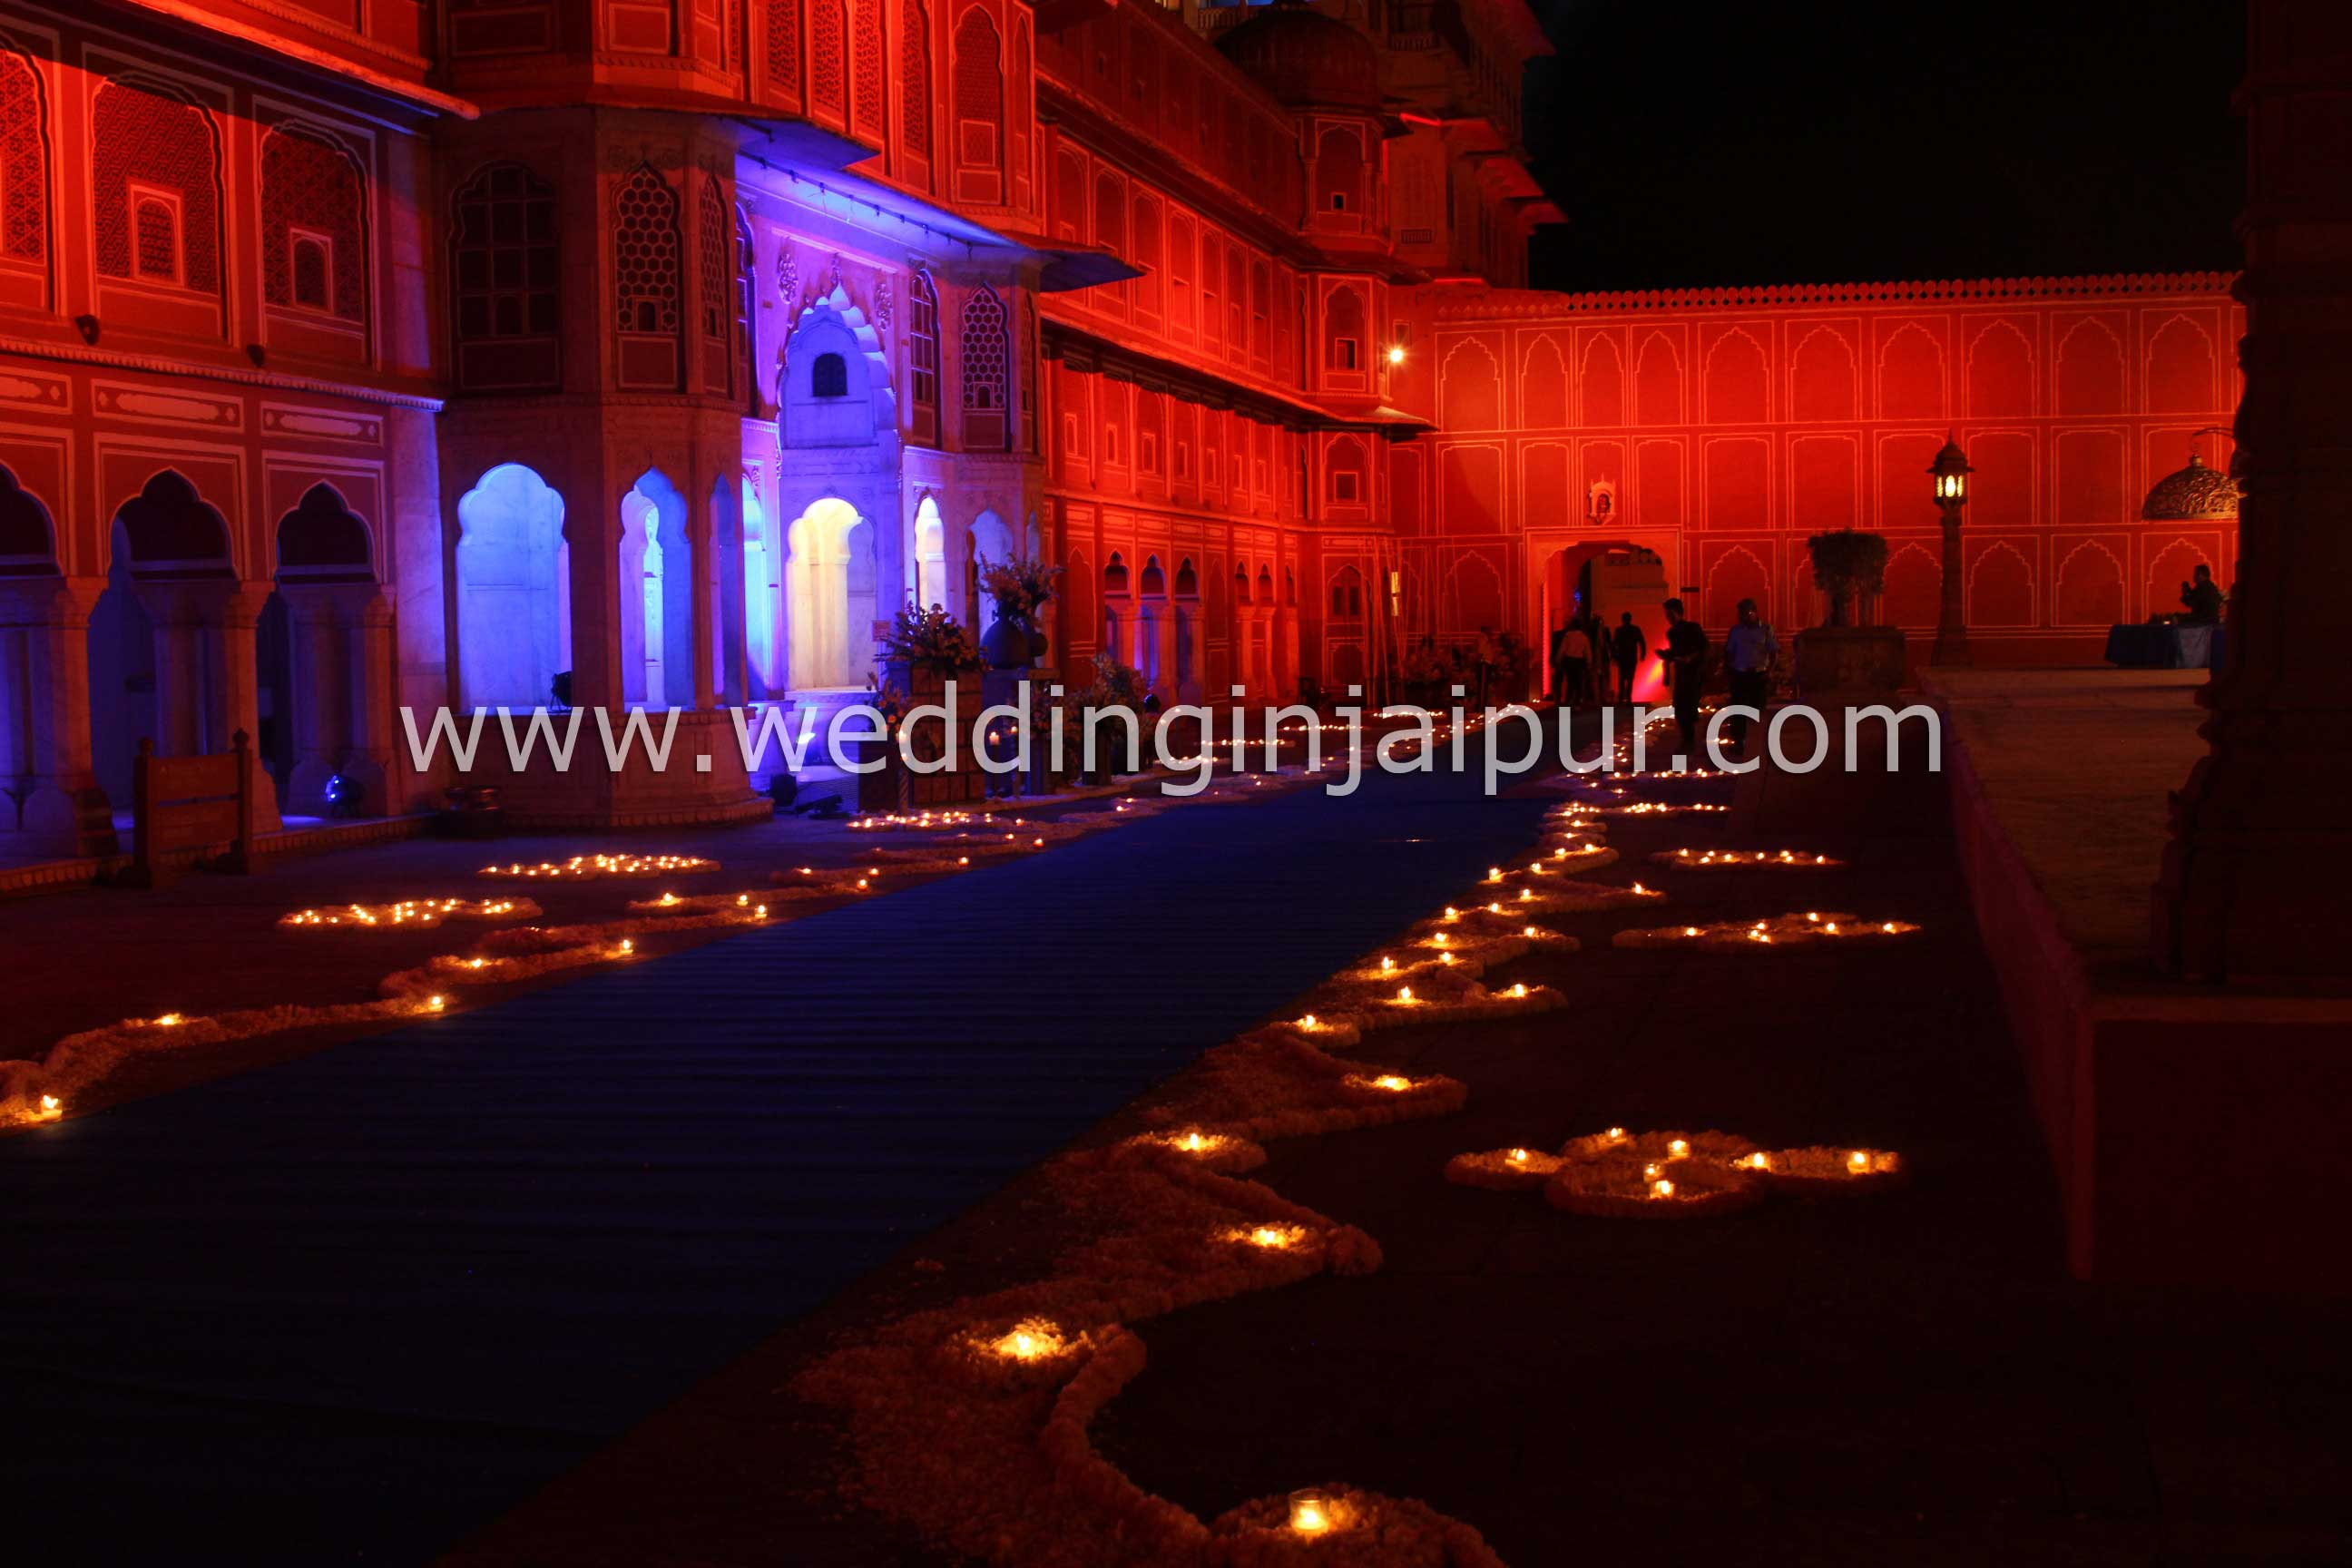 Wedding event city palace jaipur traditional rajasthani and mughal art and architecture the city palace complex houses several palatial structures in the heart of the old jaipur city junglespirit Images